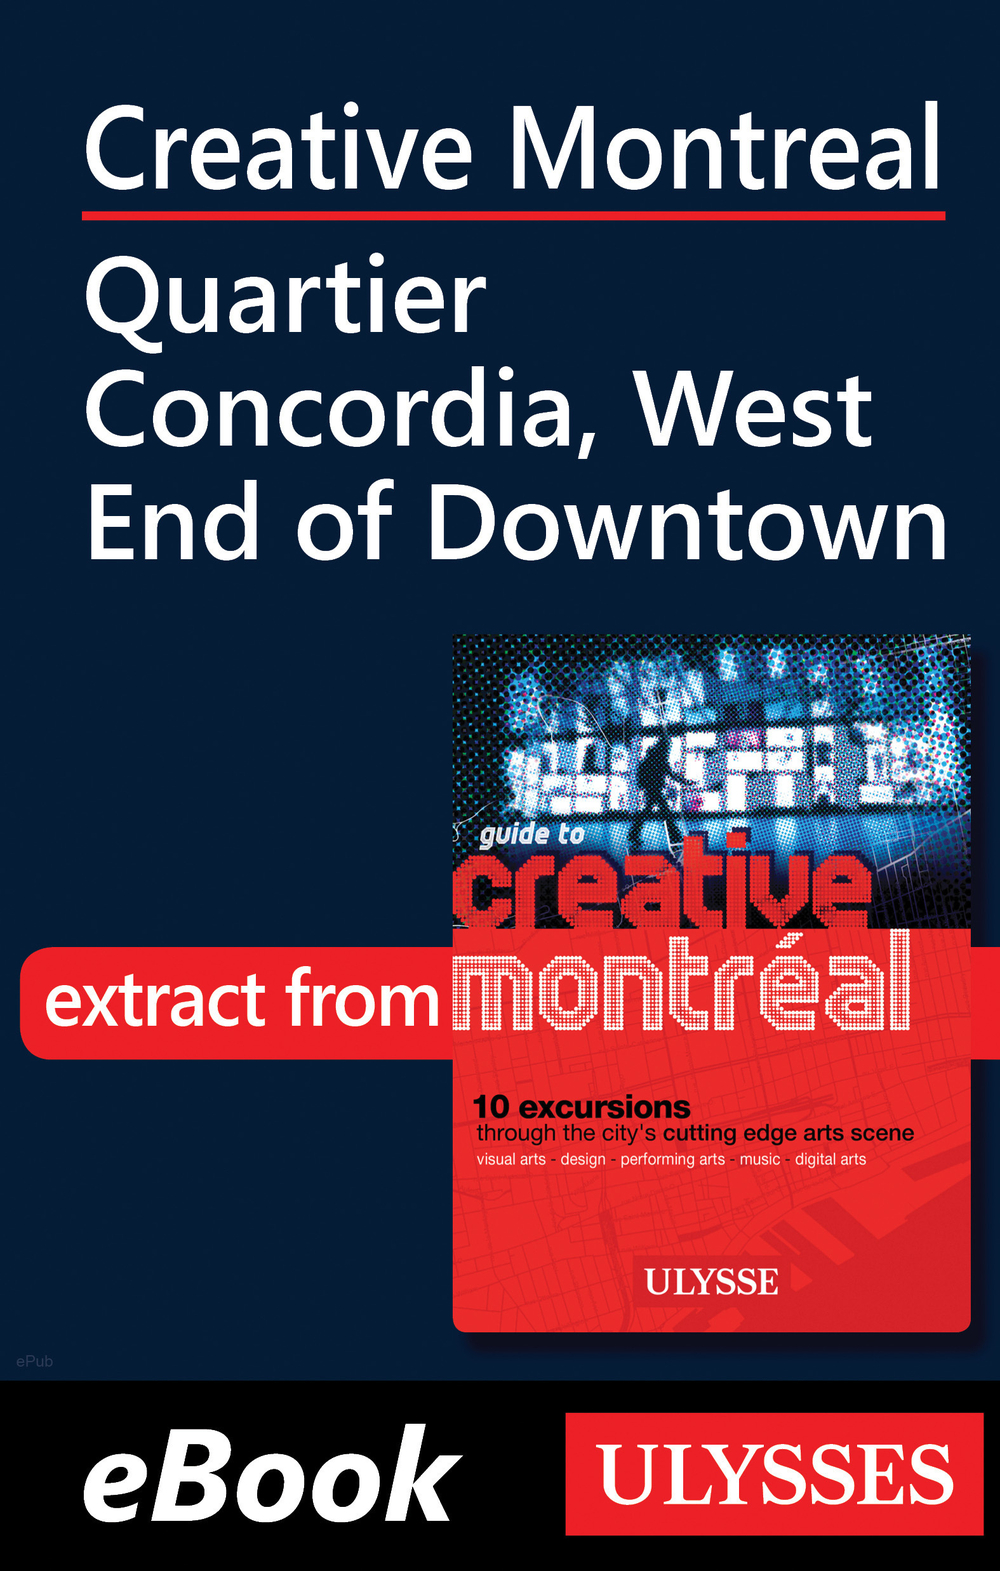 Creative Montreal - Quartier Concordia, West End of Downtown